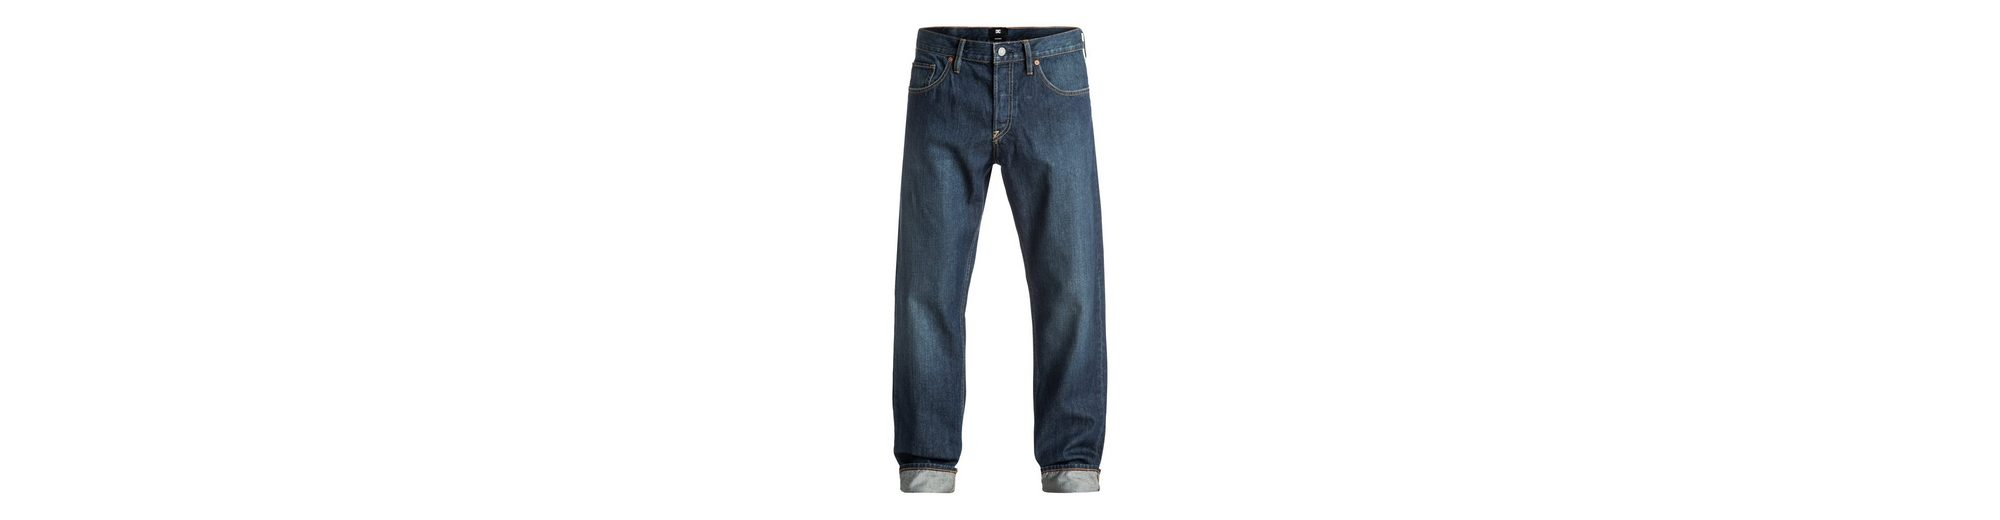 DC Shoes Roomy Fit Jeans Worker Roomy Stone Wash - Roomy Fit Jeans